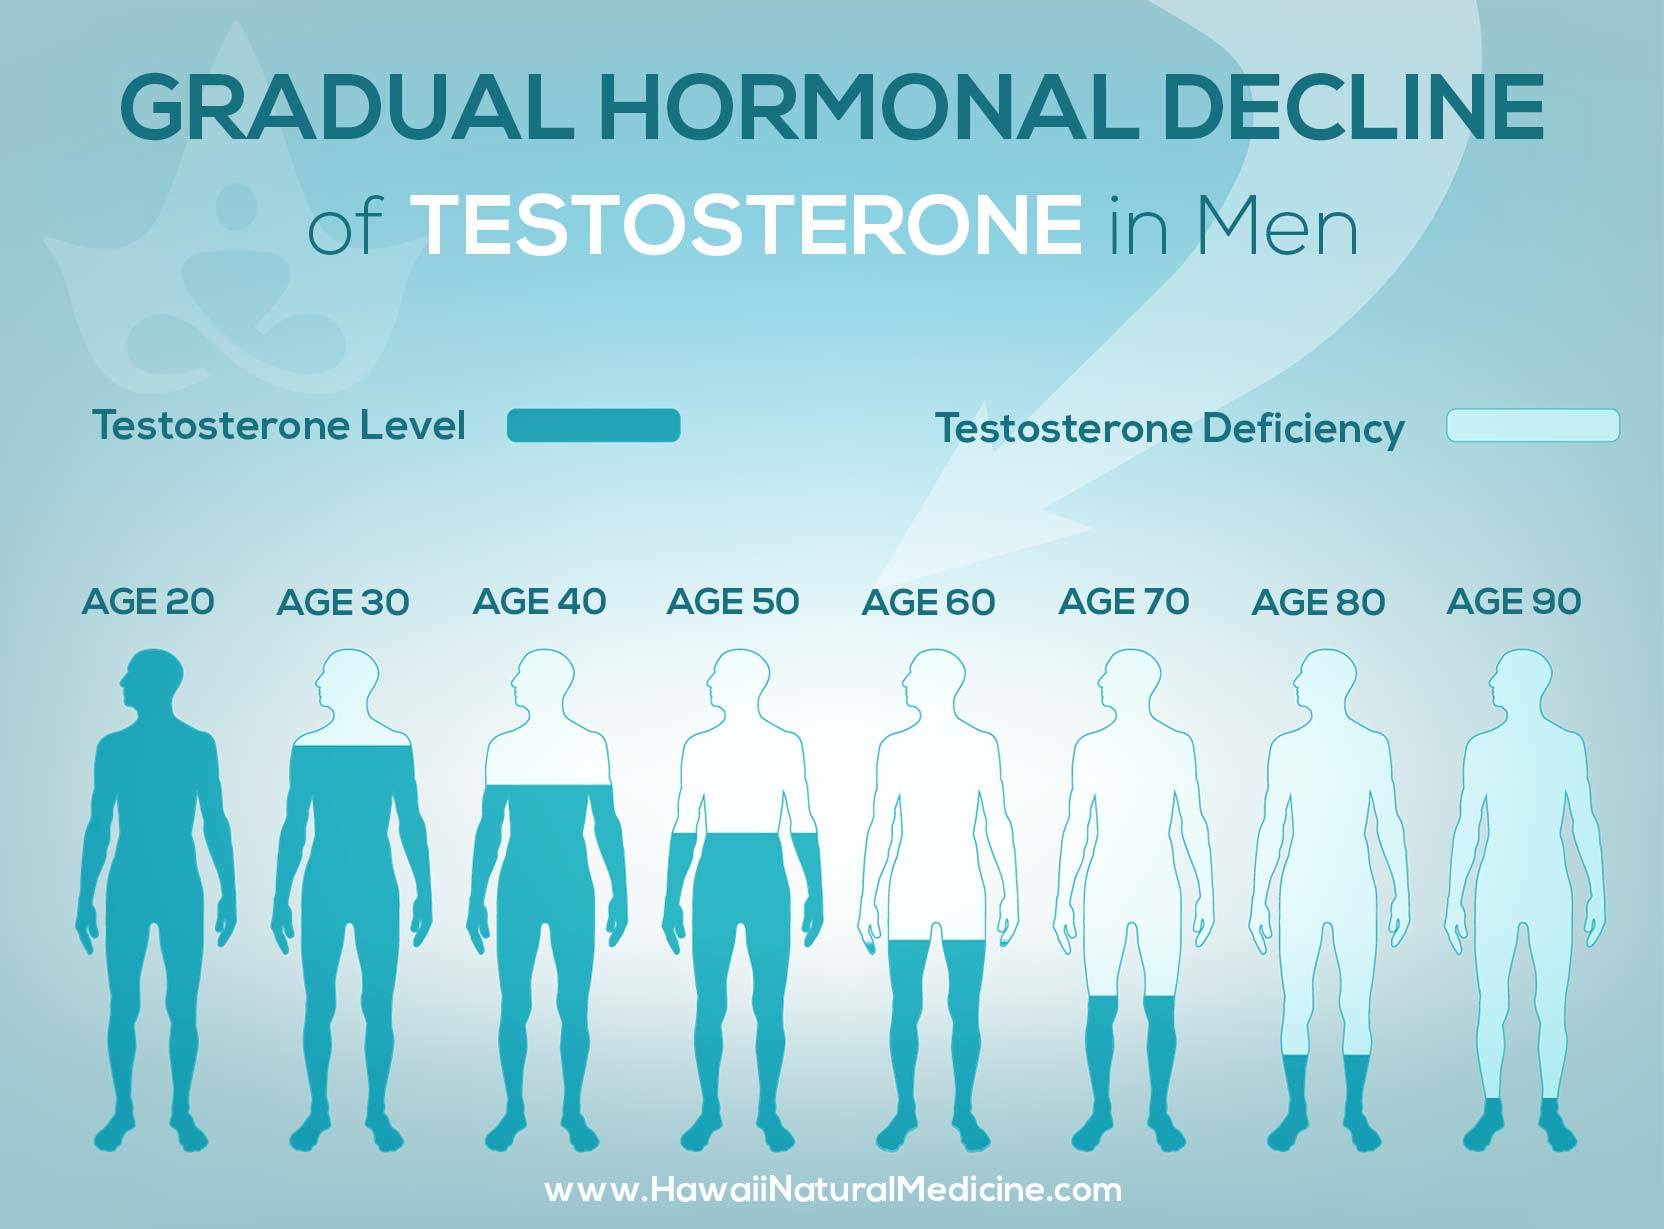 Testosterone Deficiency Chart, Male Hormone Chart, Male Menopause